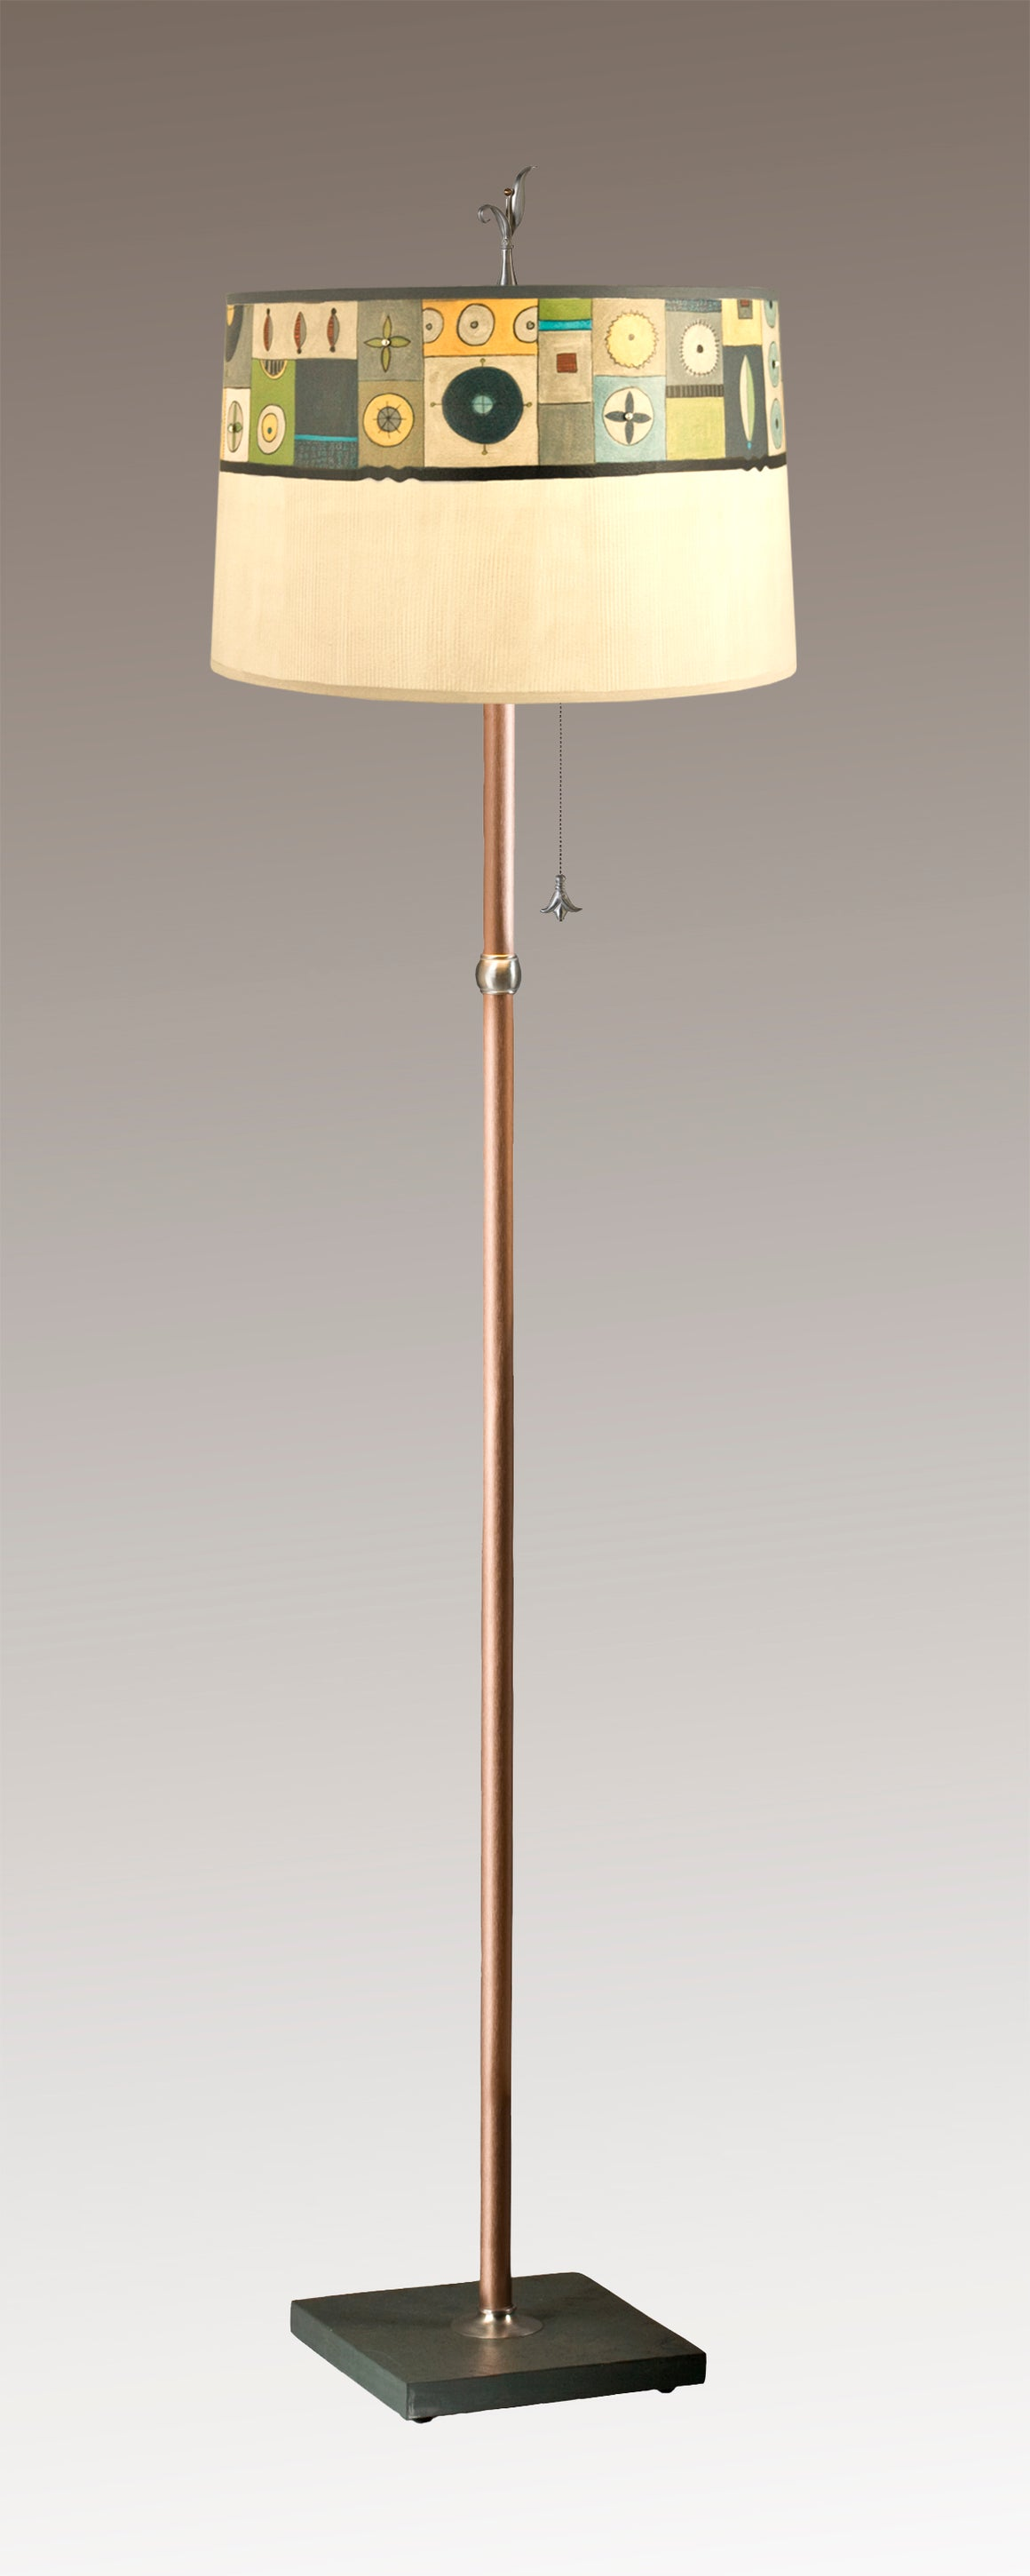 Copper Floor Lamp on Vermont Slate with Large Drum Shade in Lucky Mosaic Oyster